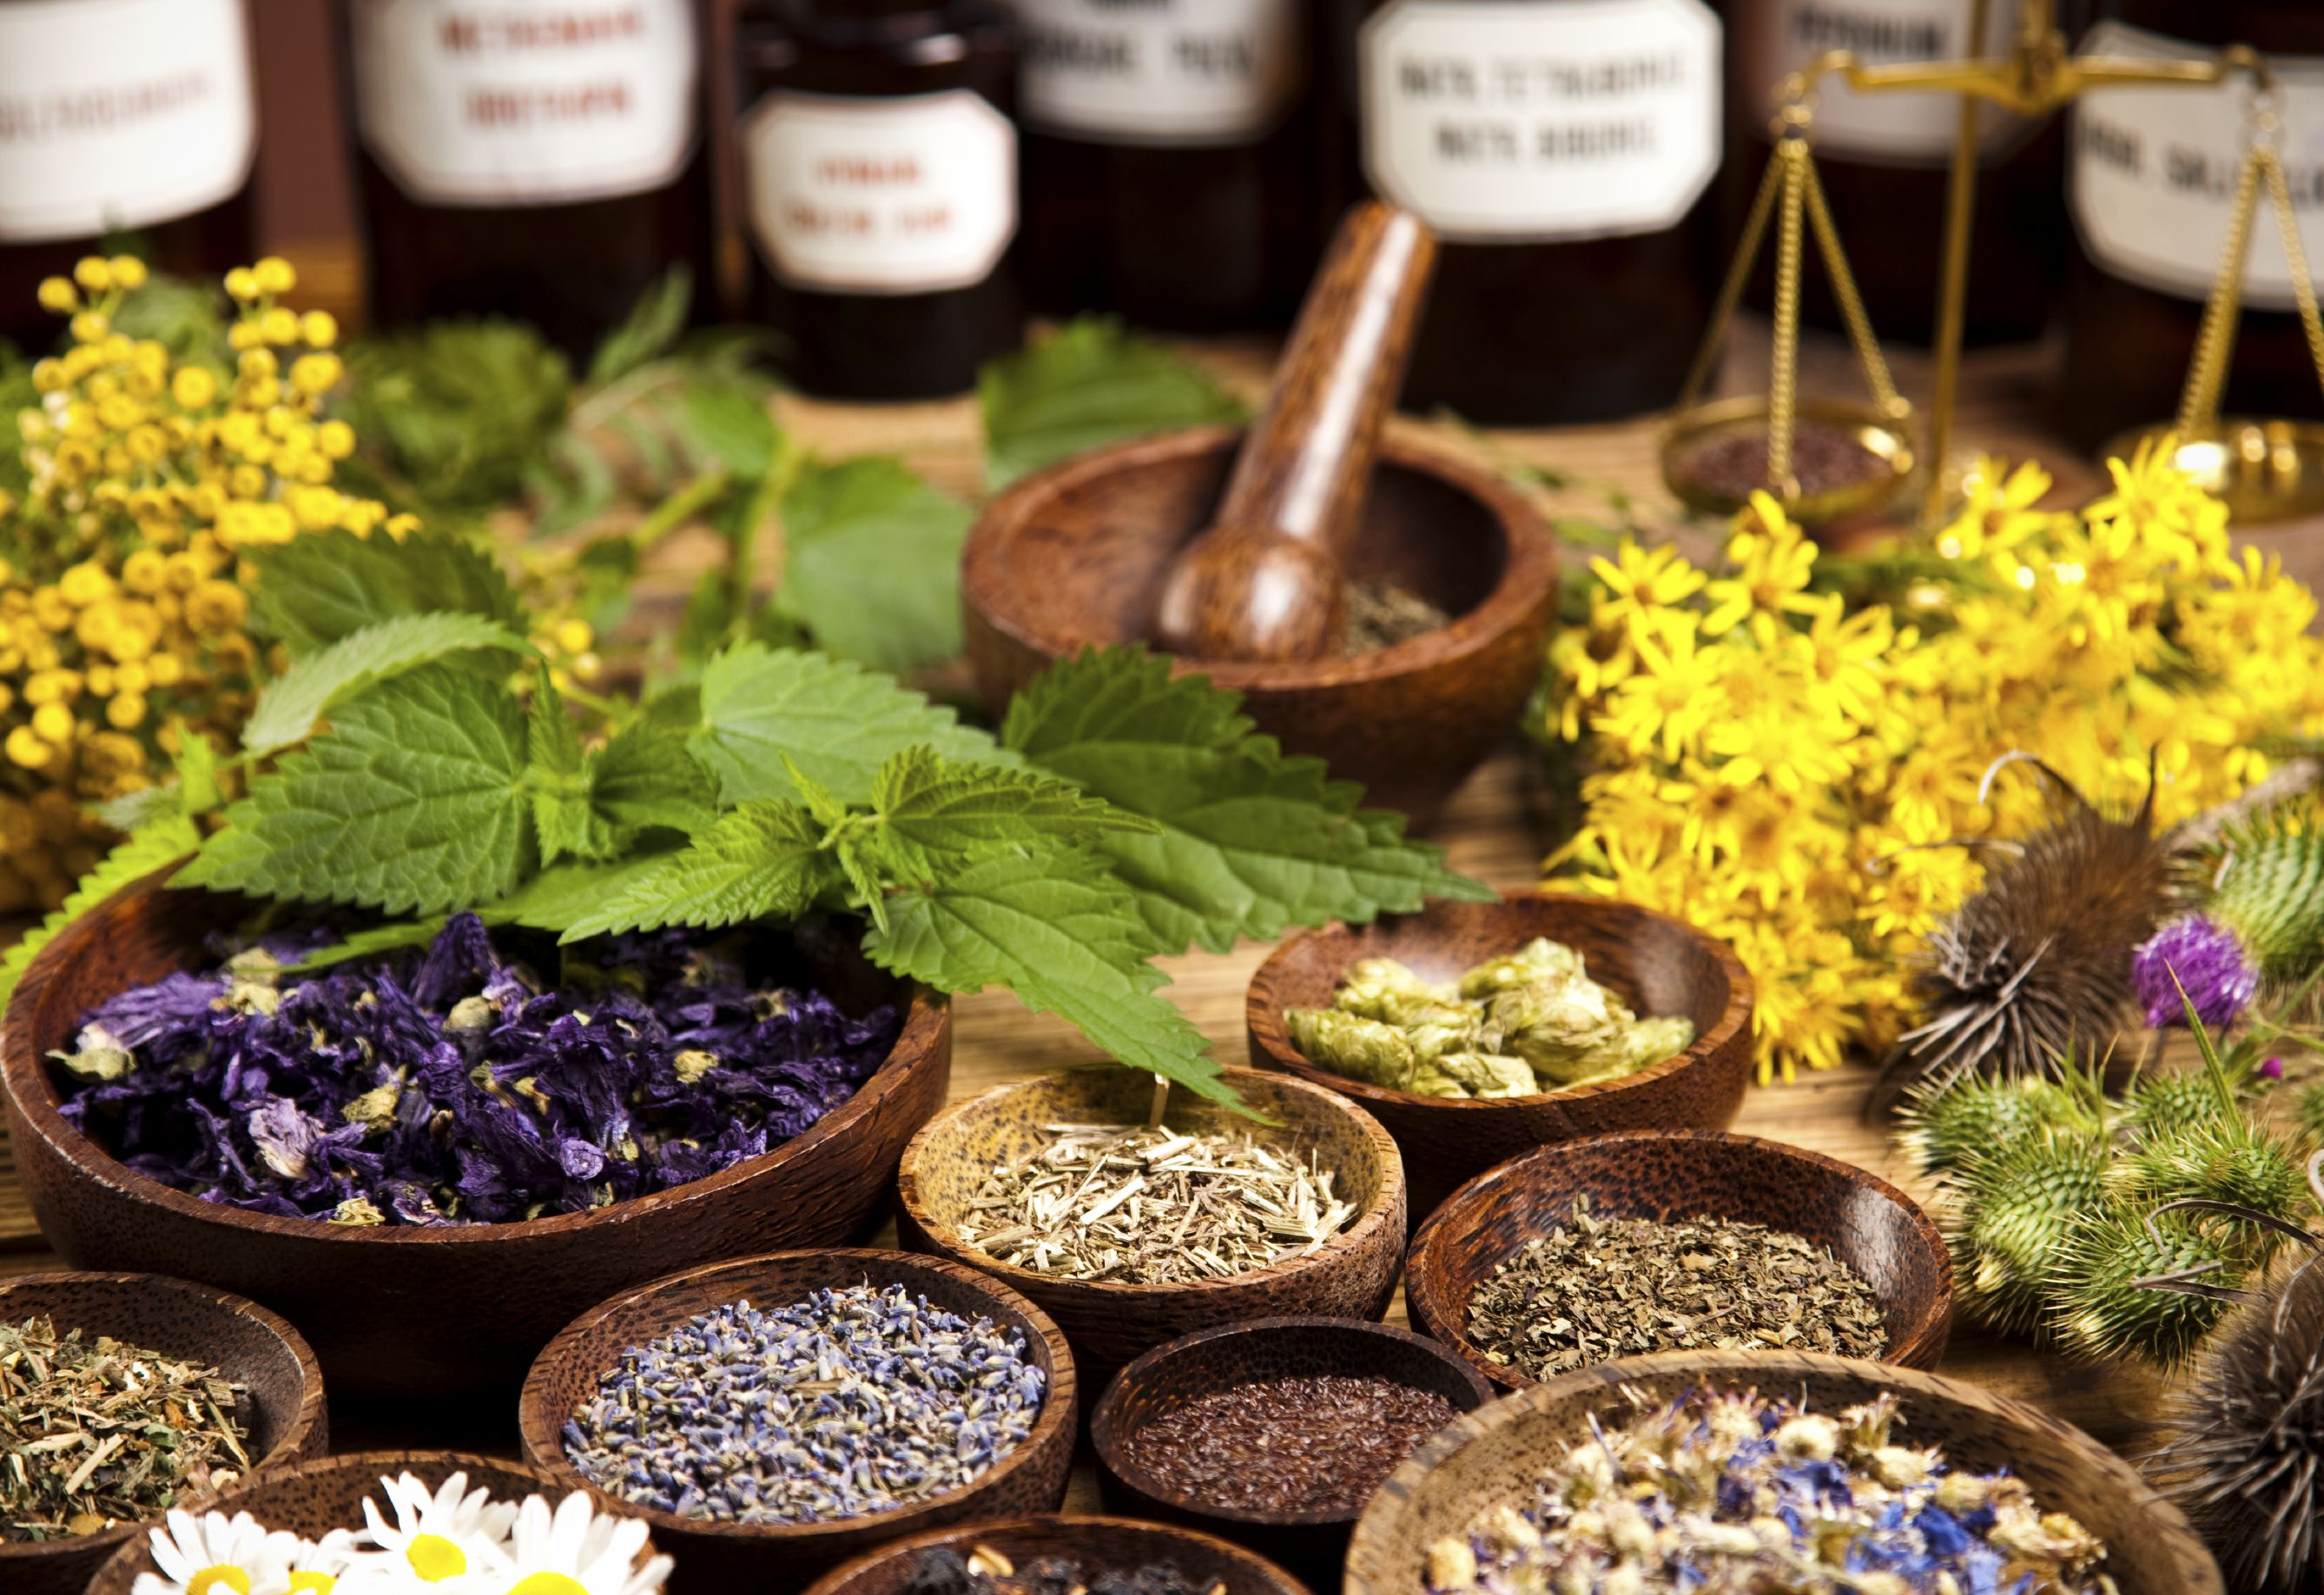 An Overview of Homeopathic Medicine